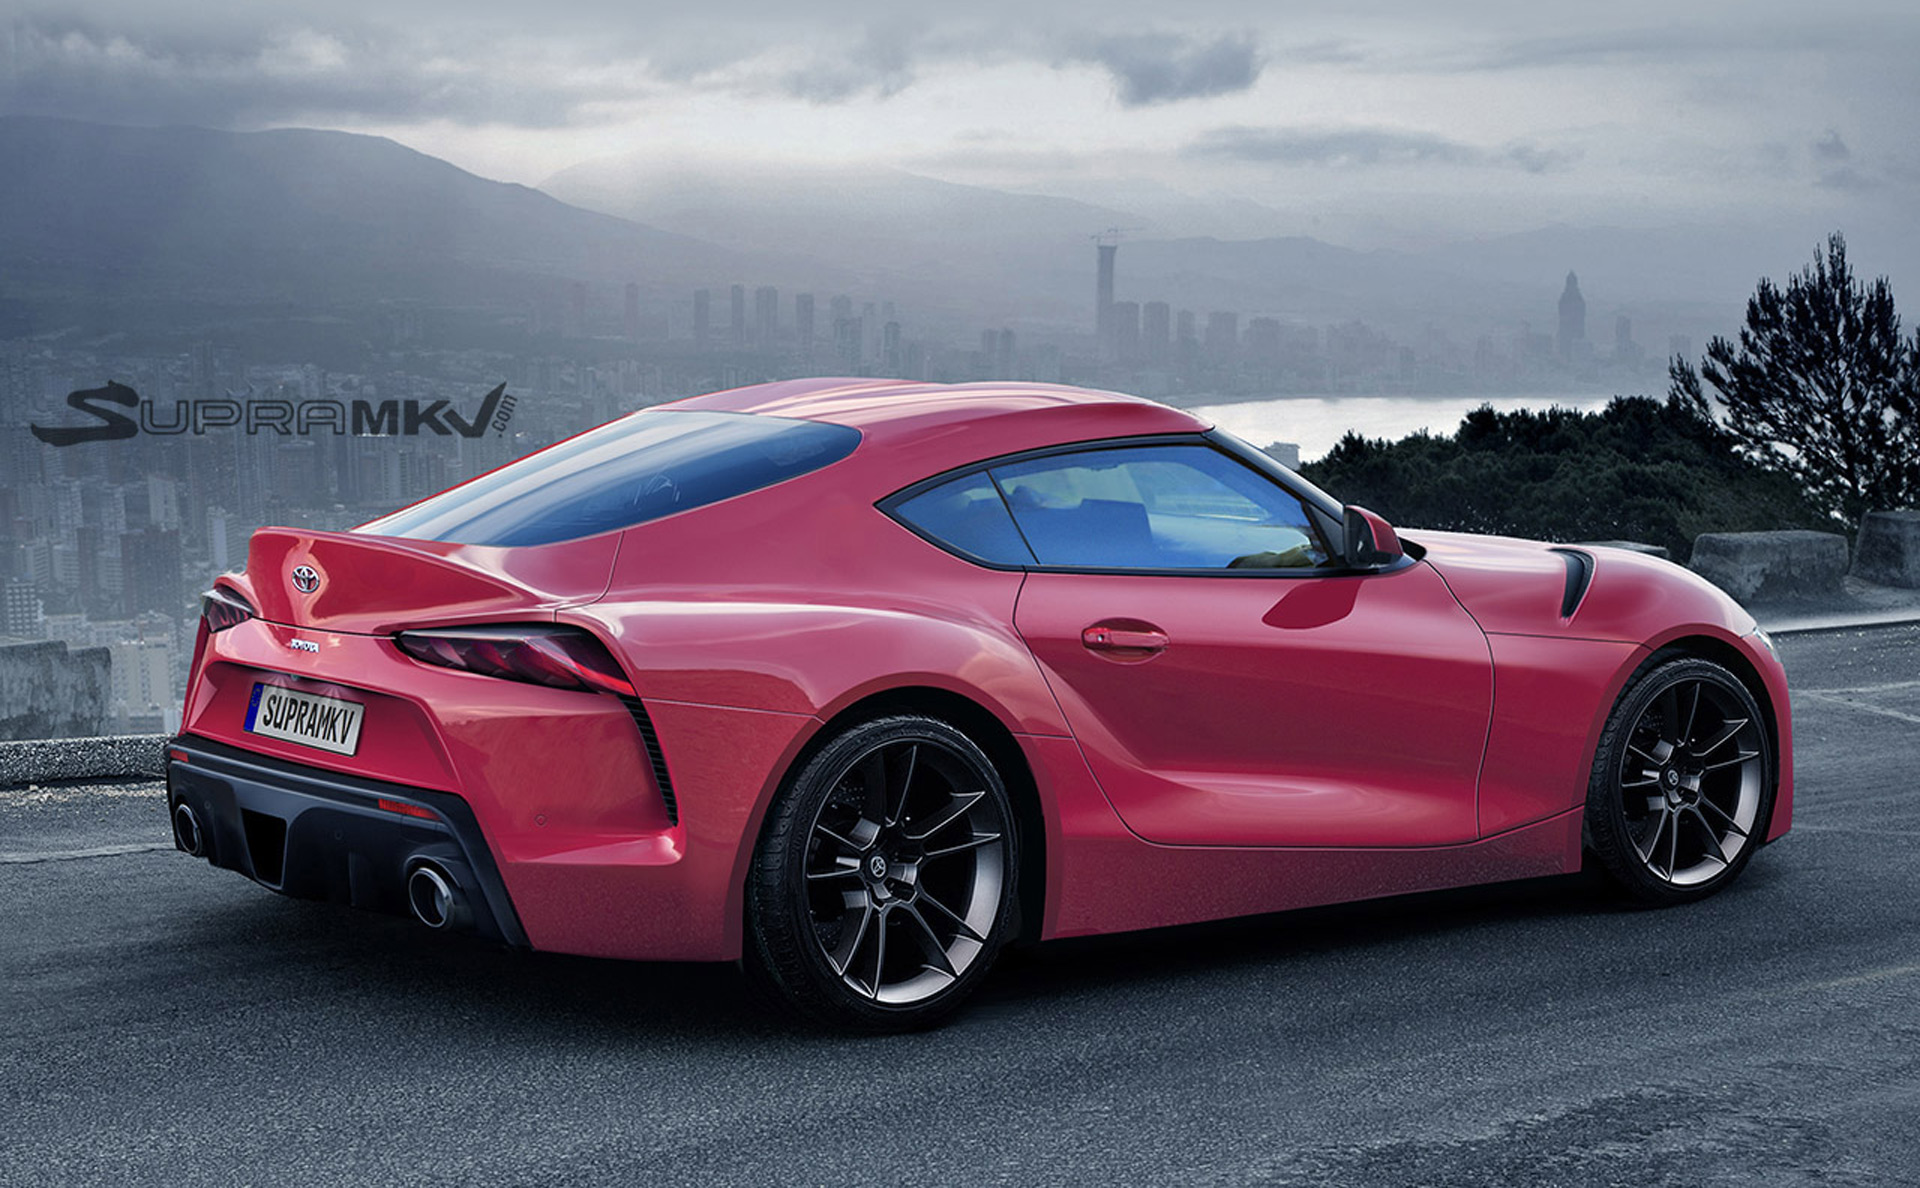 New Information Says 2019 Toyota Supra Will Get A Manual